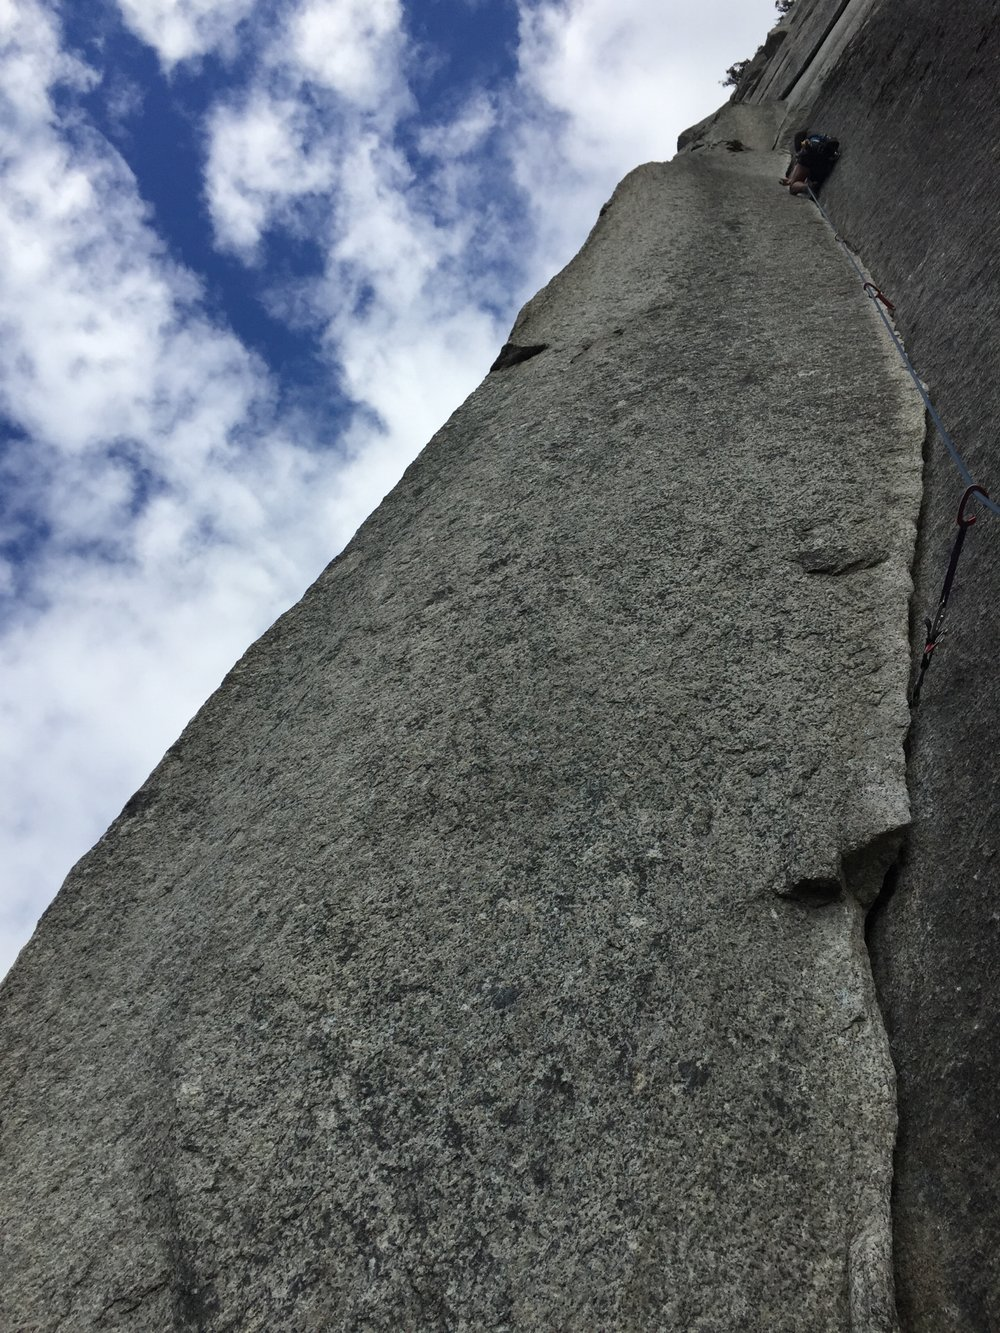 Here's a shot of the Split Pillar pitch on the Grand Wall